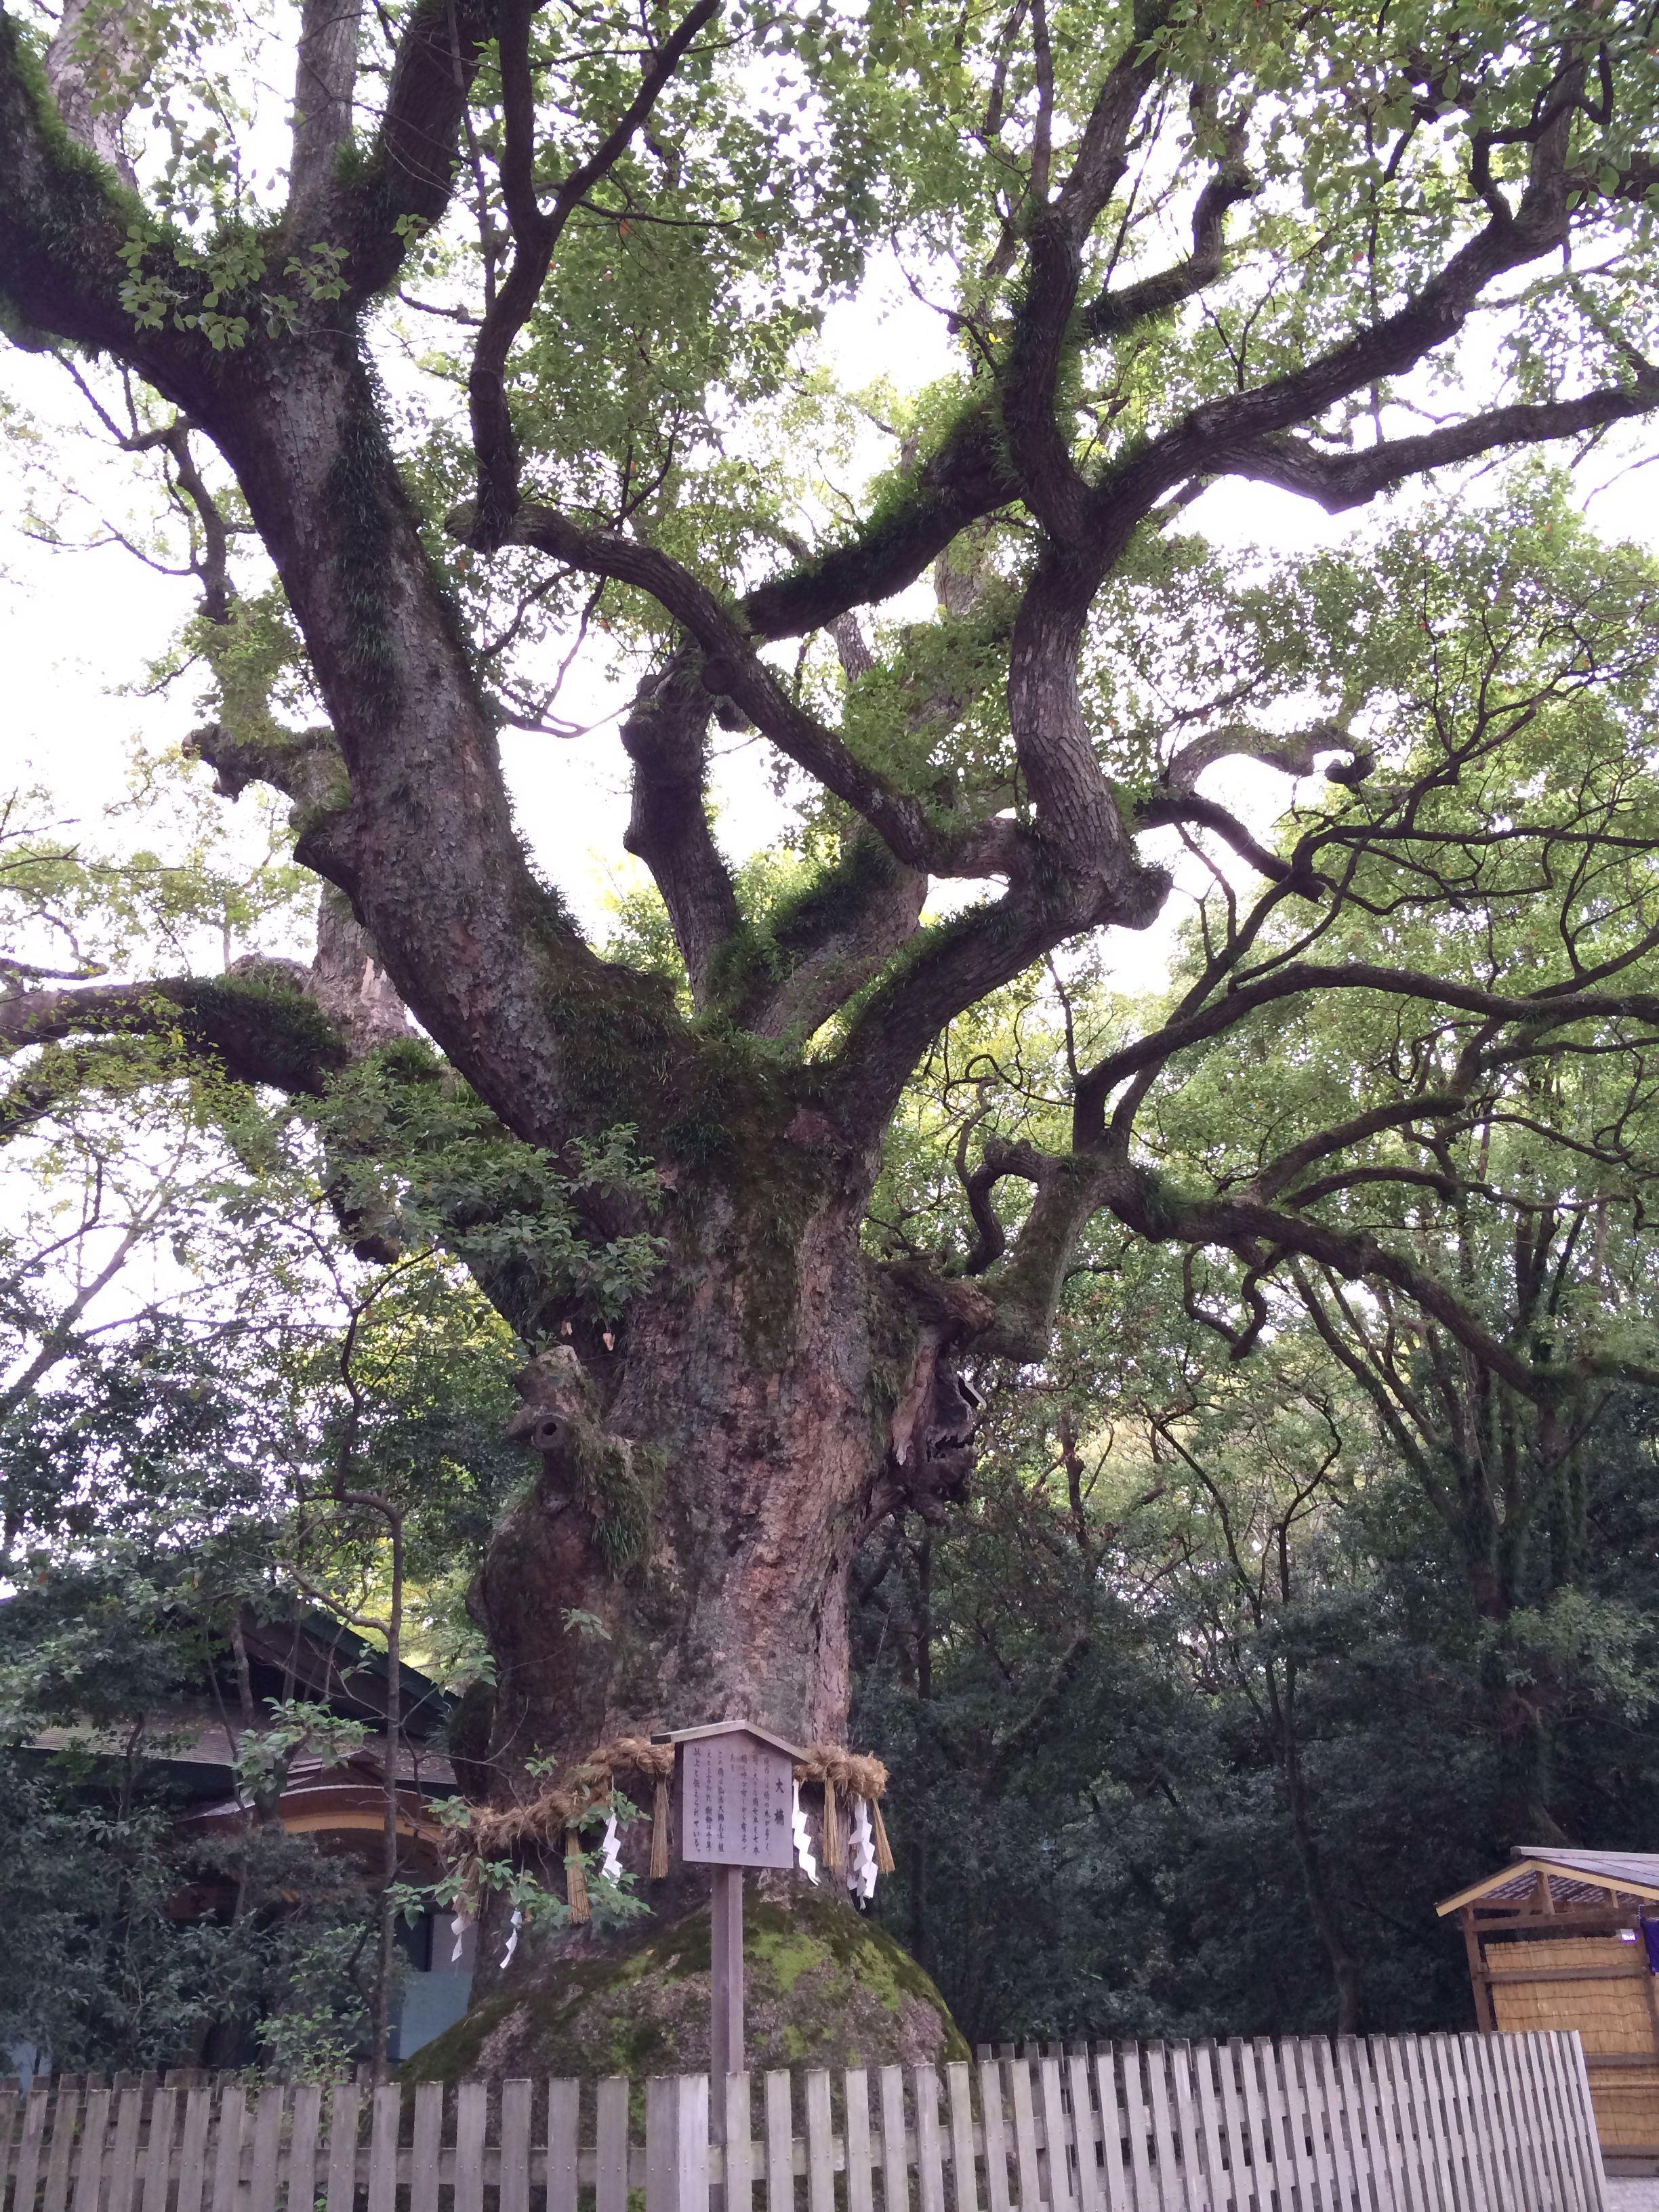 over 1000 years old camphor tree